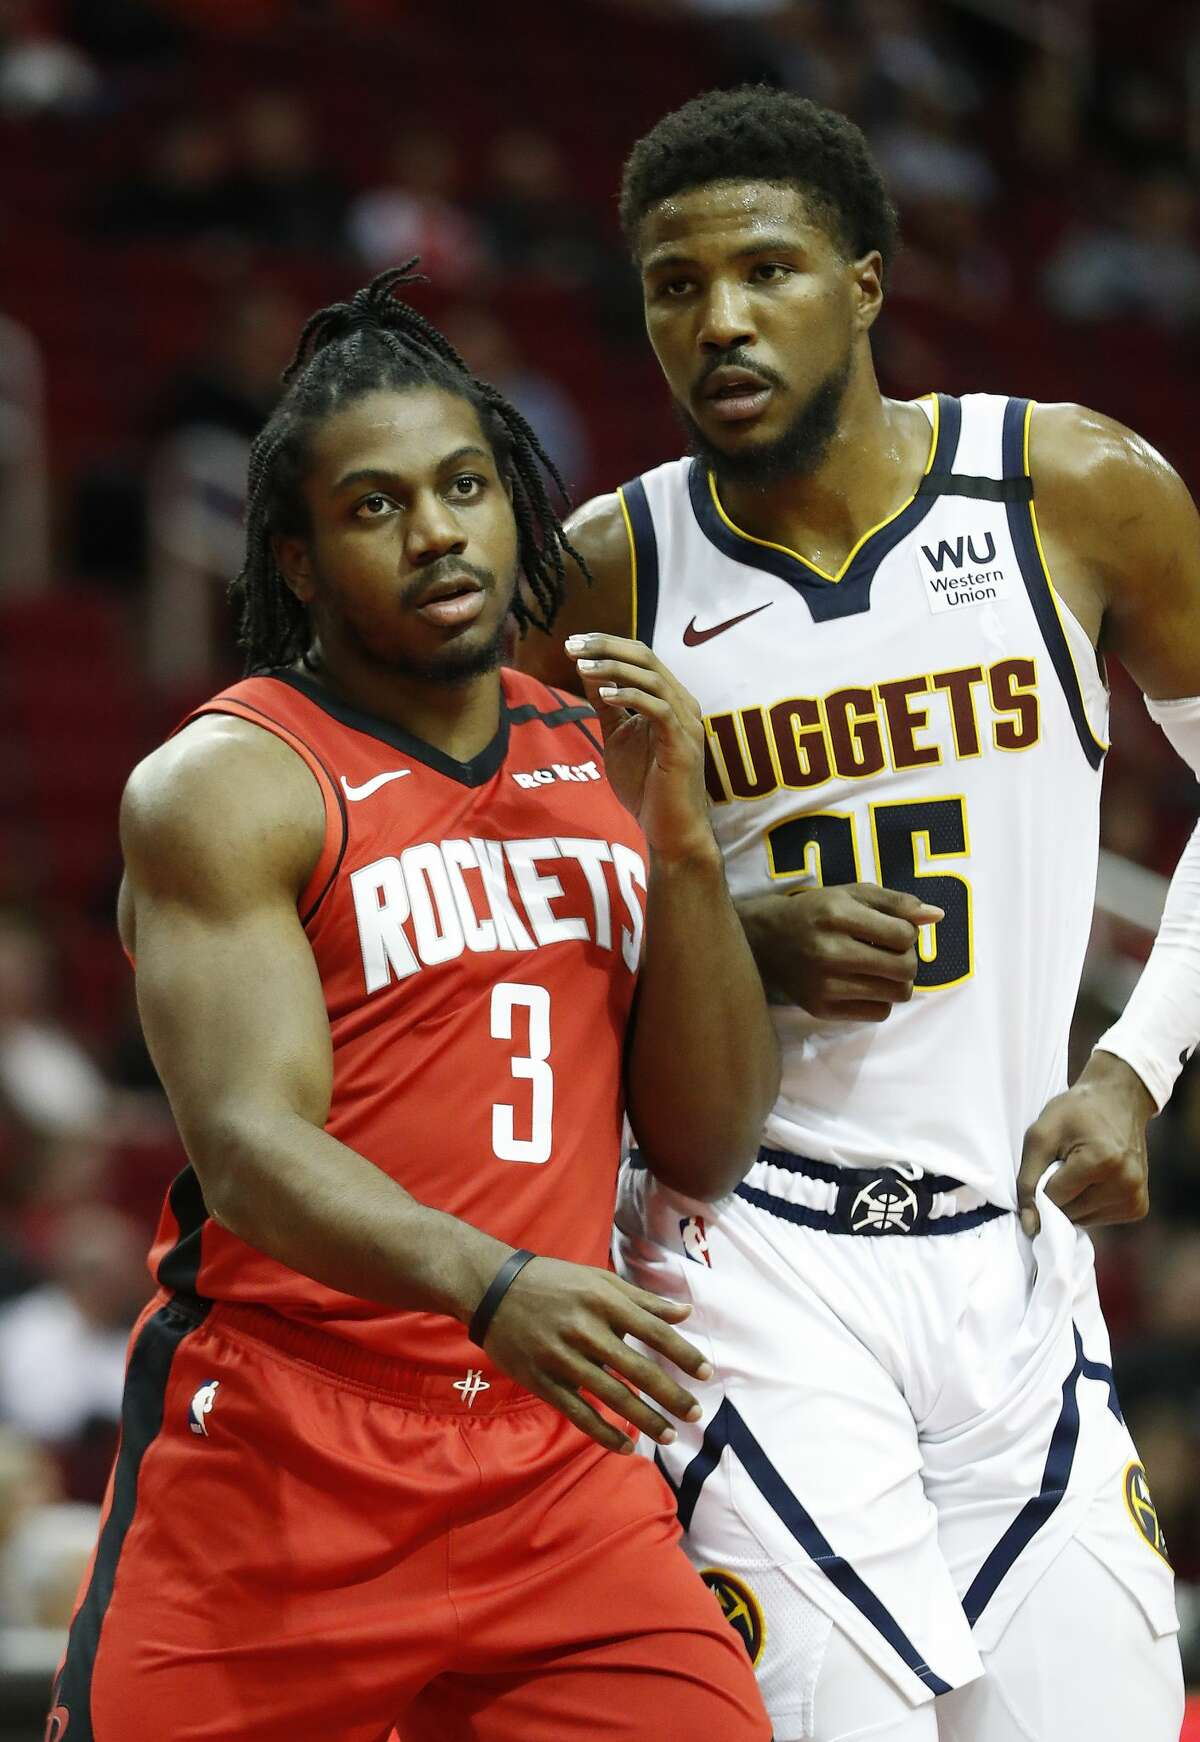 Houston Rockets guard Chris Clemons (3) saw some playing time late during the second half of an NBA basketball game at Toyota Center in Houston, Wednesday, Jan. 22, 2020.